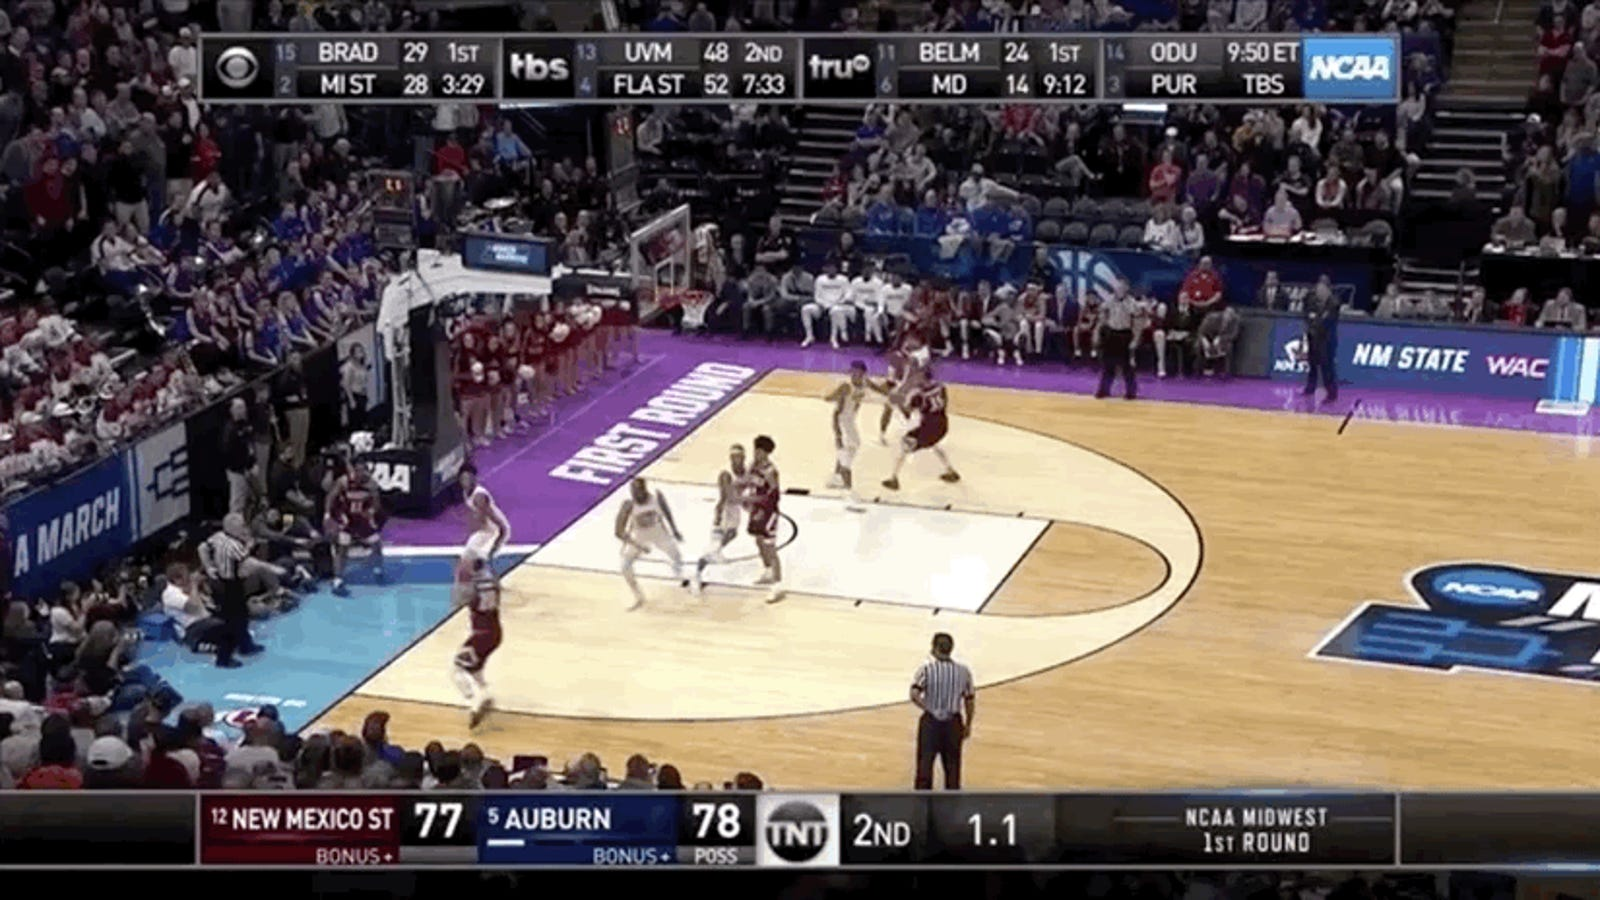 New Mexico State Out-Choked Auburn And Failed To Pull Off The First Real Upset Of March Madness